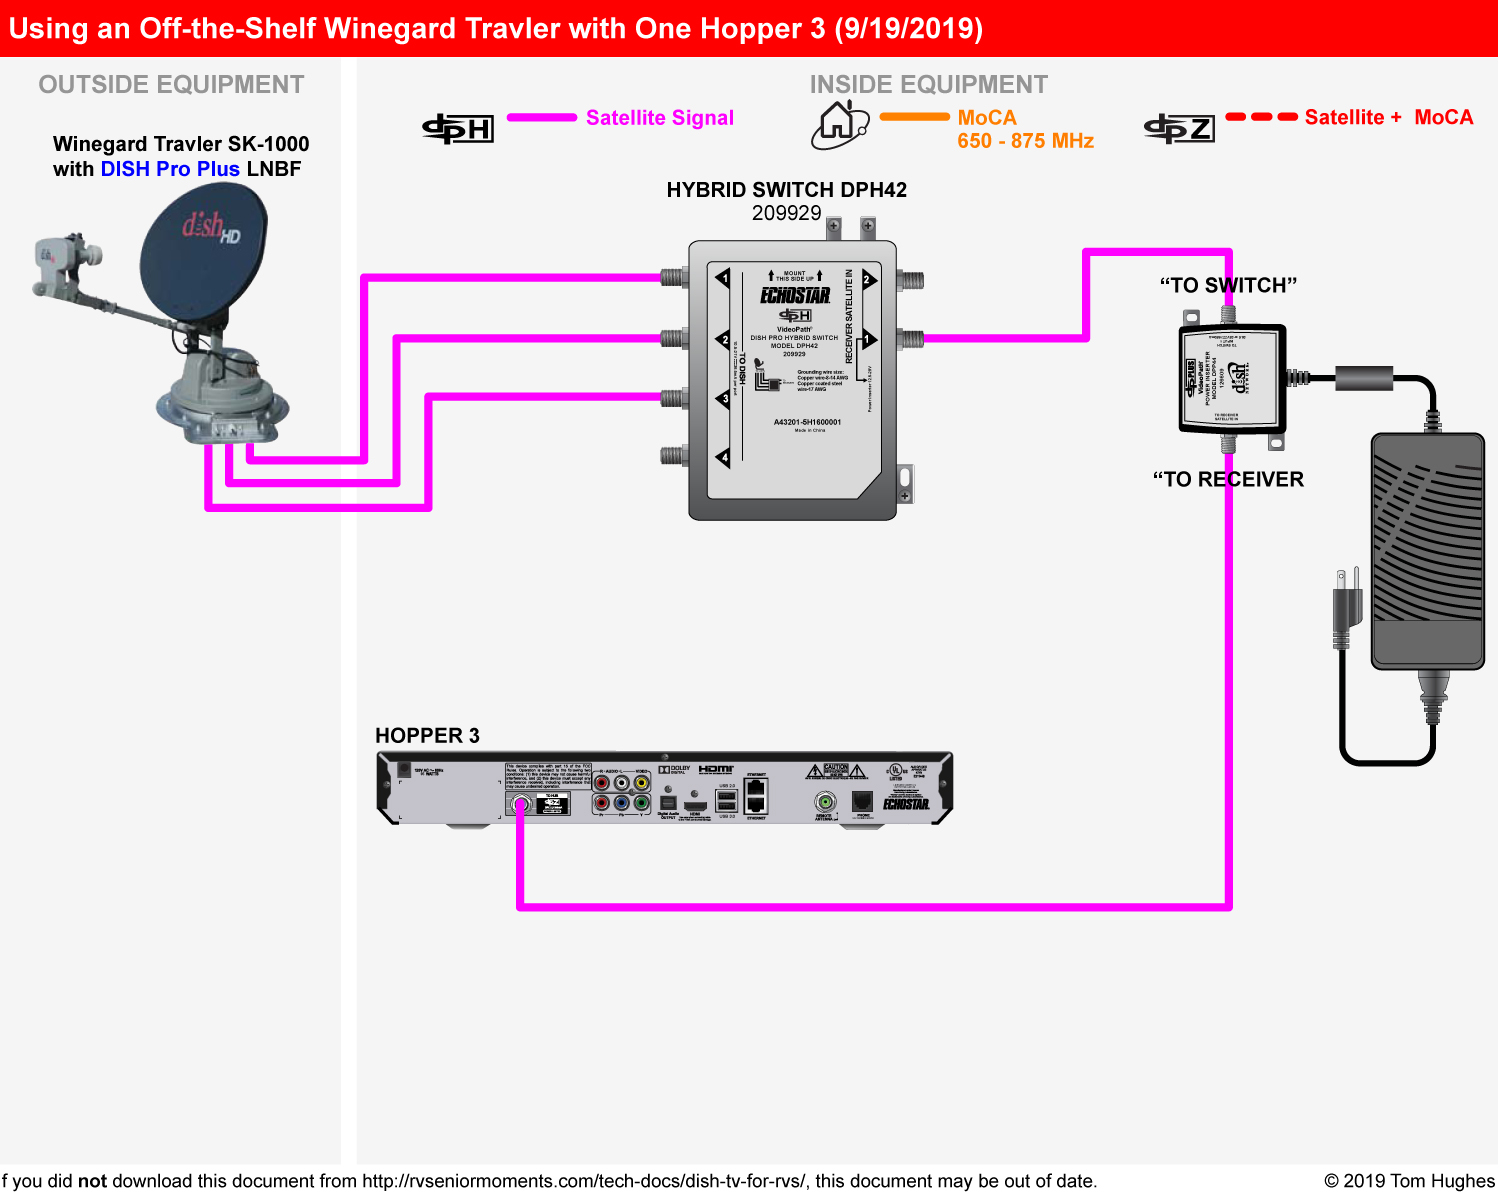 Winegard Satellite Wiring Diagram - Jlg Fuel Filter for Wiring Diagram  Schematics | Winegard Rv Satellite Wiring Diagrams |  | Wiring Diagram Schematics